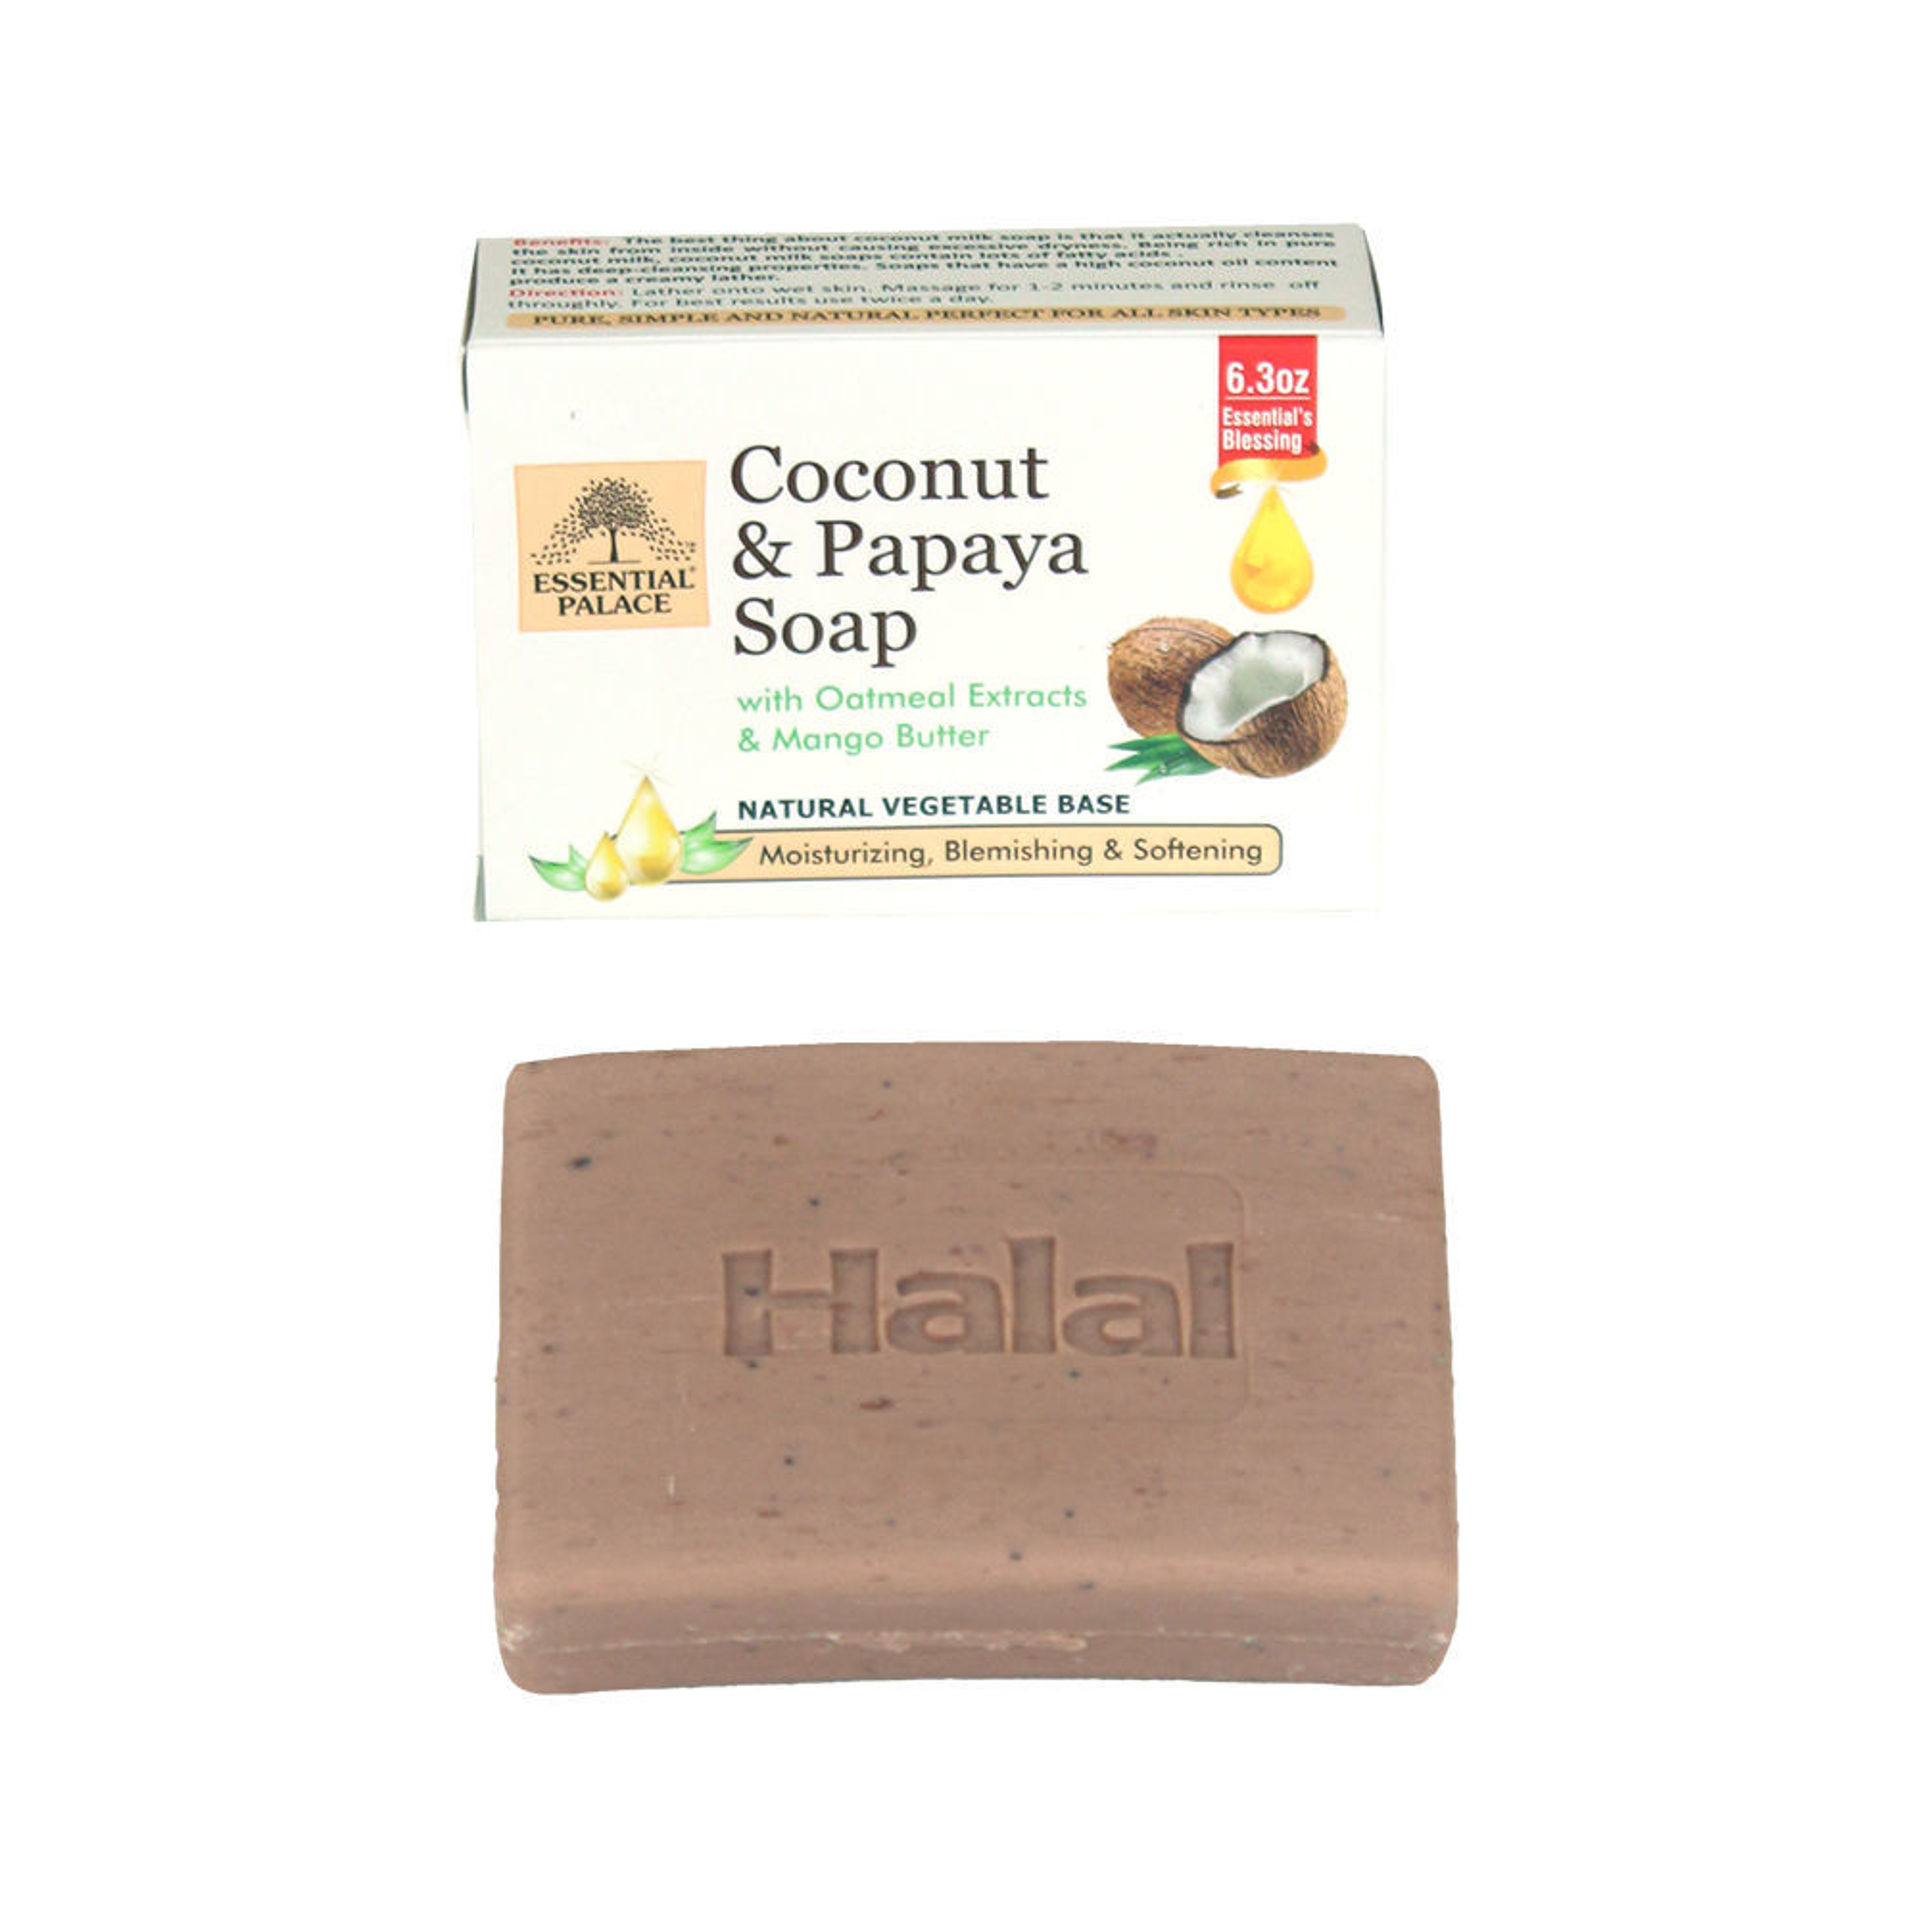 Picture of Coconut & Papaya Soap - 6.3 oz.